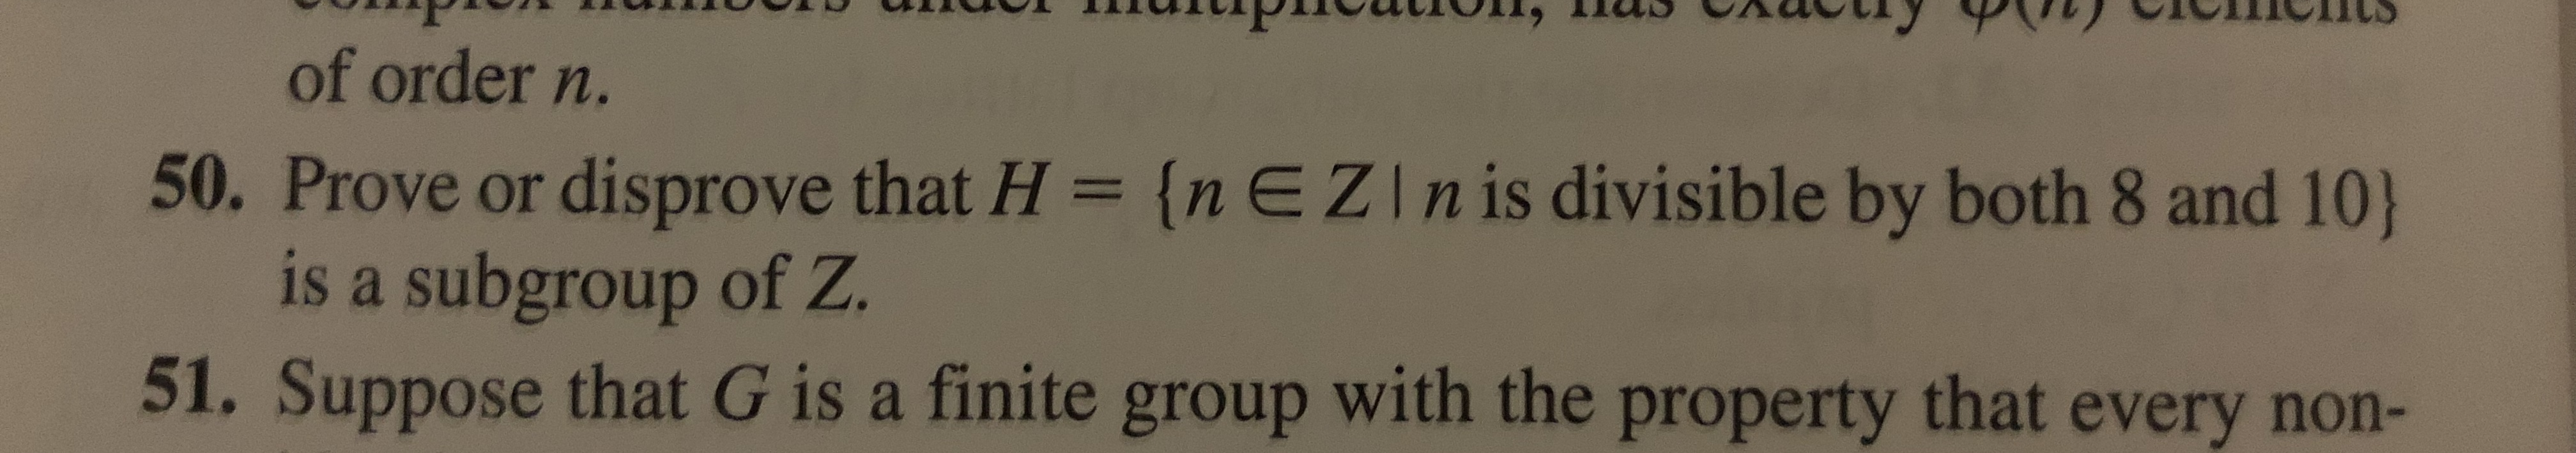 of order n. 50. Prove or disprove that H = {nEZIn is divisible by both 8 and 10) is a subgroup of Z. 51. Suppose that G is a finite group with the property that every non-